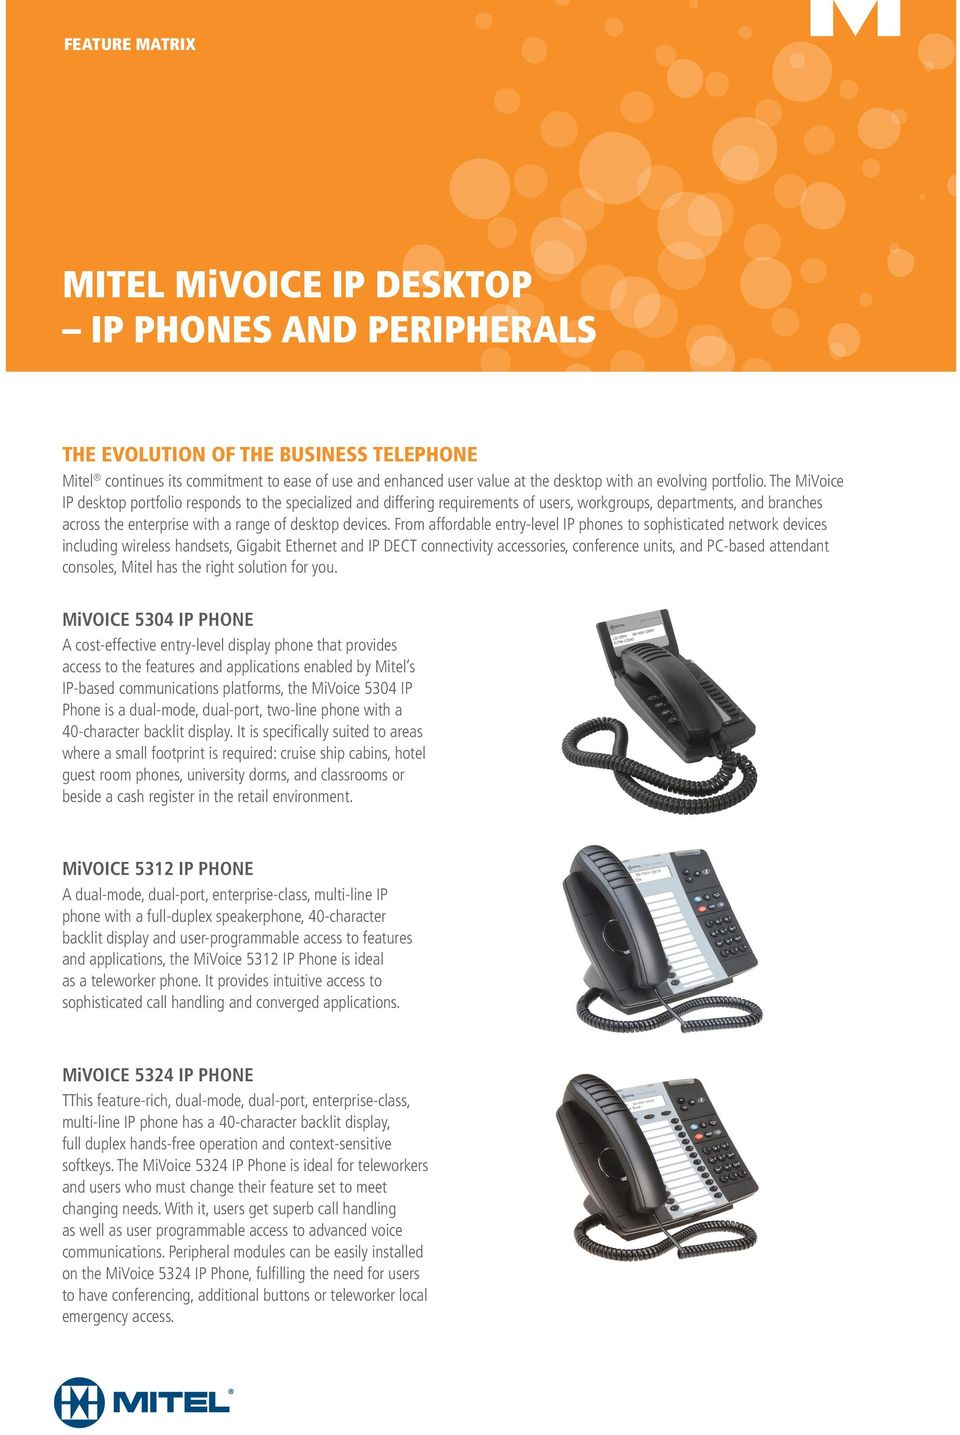 The MiVoice IP desktop portfolio responds to the specialized and differing requirements of users, workgroups, departments, and branches across the enterprise with a range of desktop devices.